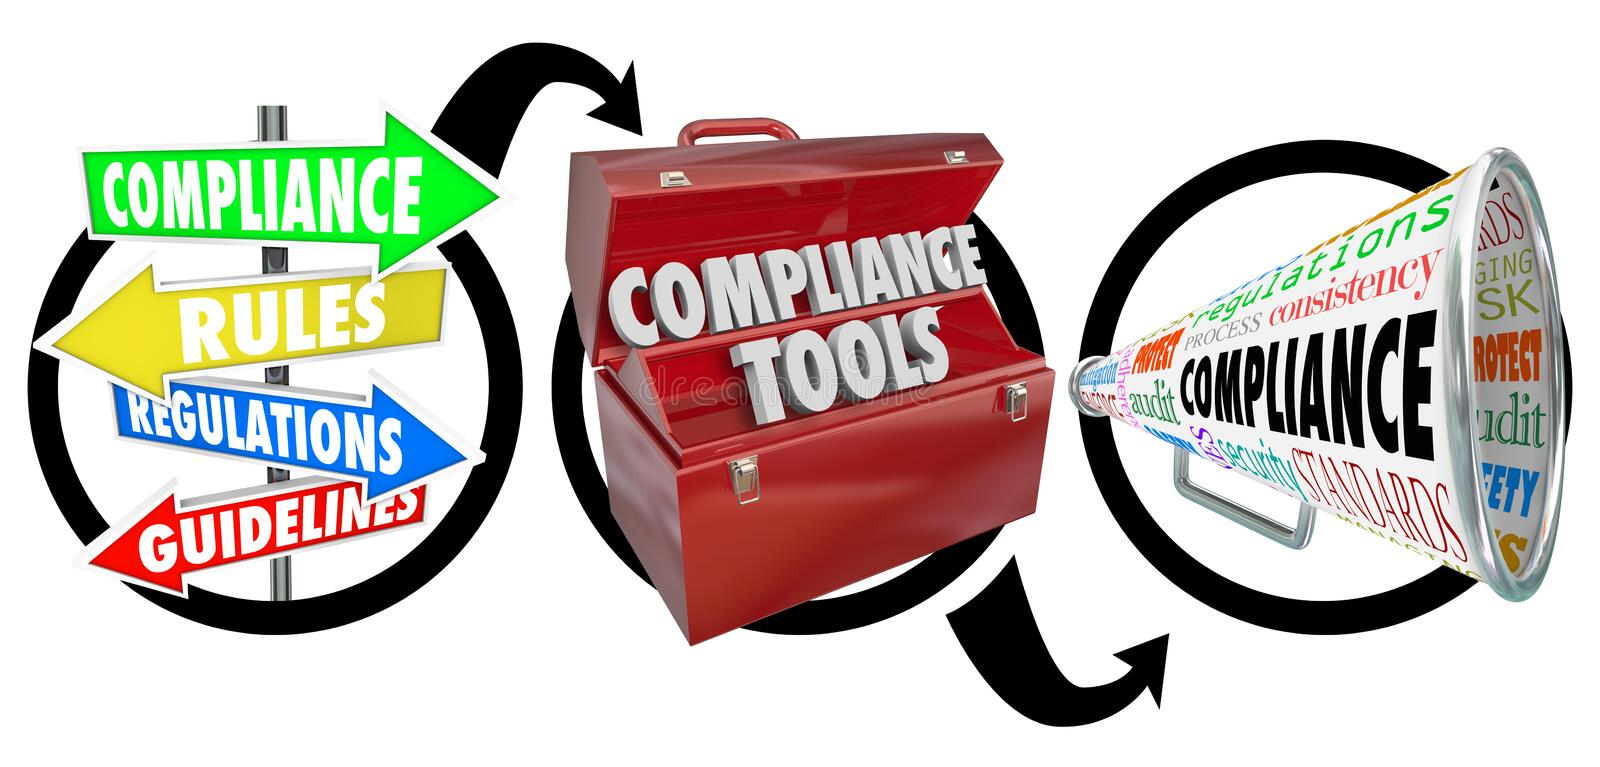 Compliance Three Step Diagram Following Rules Guidelines. Compliance steps in three step diagram with signs, toolbox and megaphone to illustrate advice on vector illustration